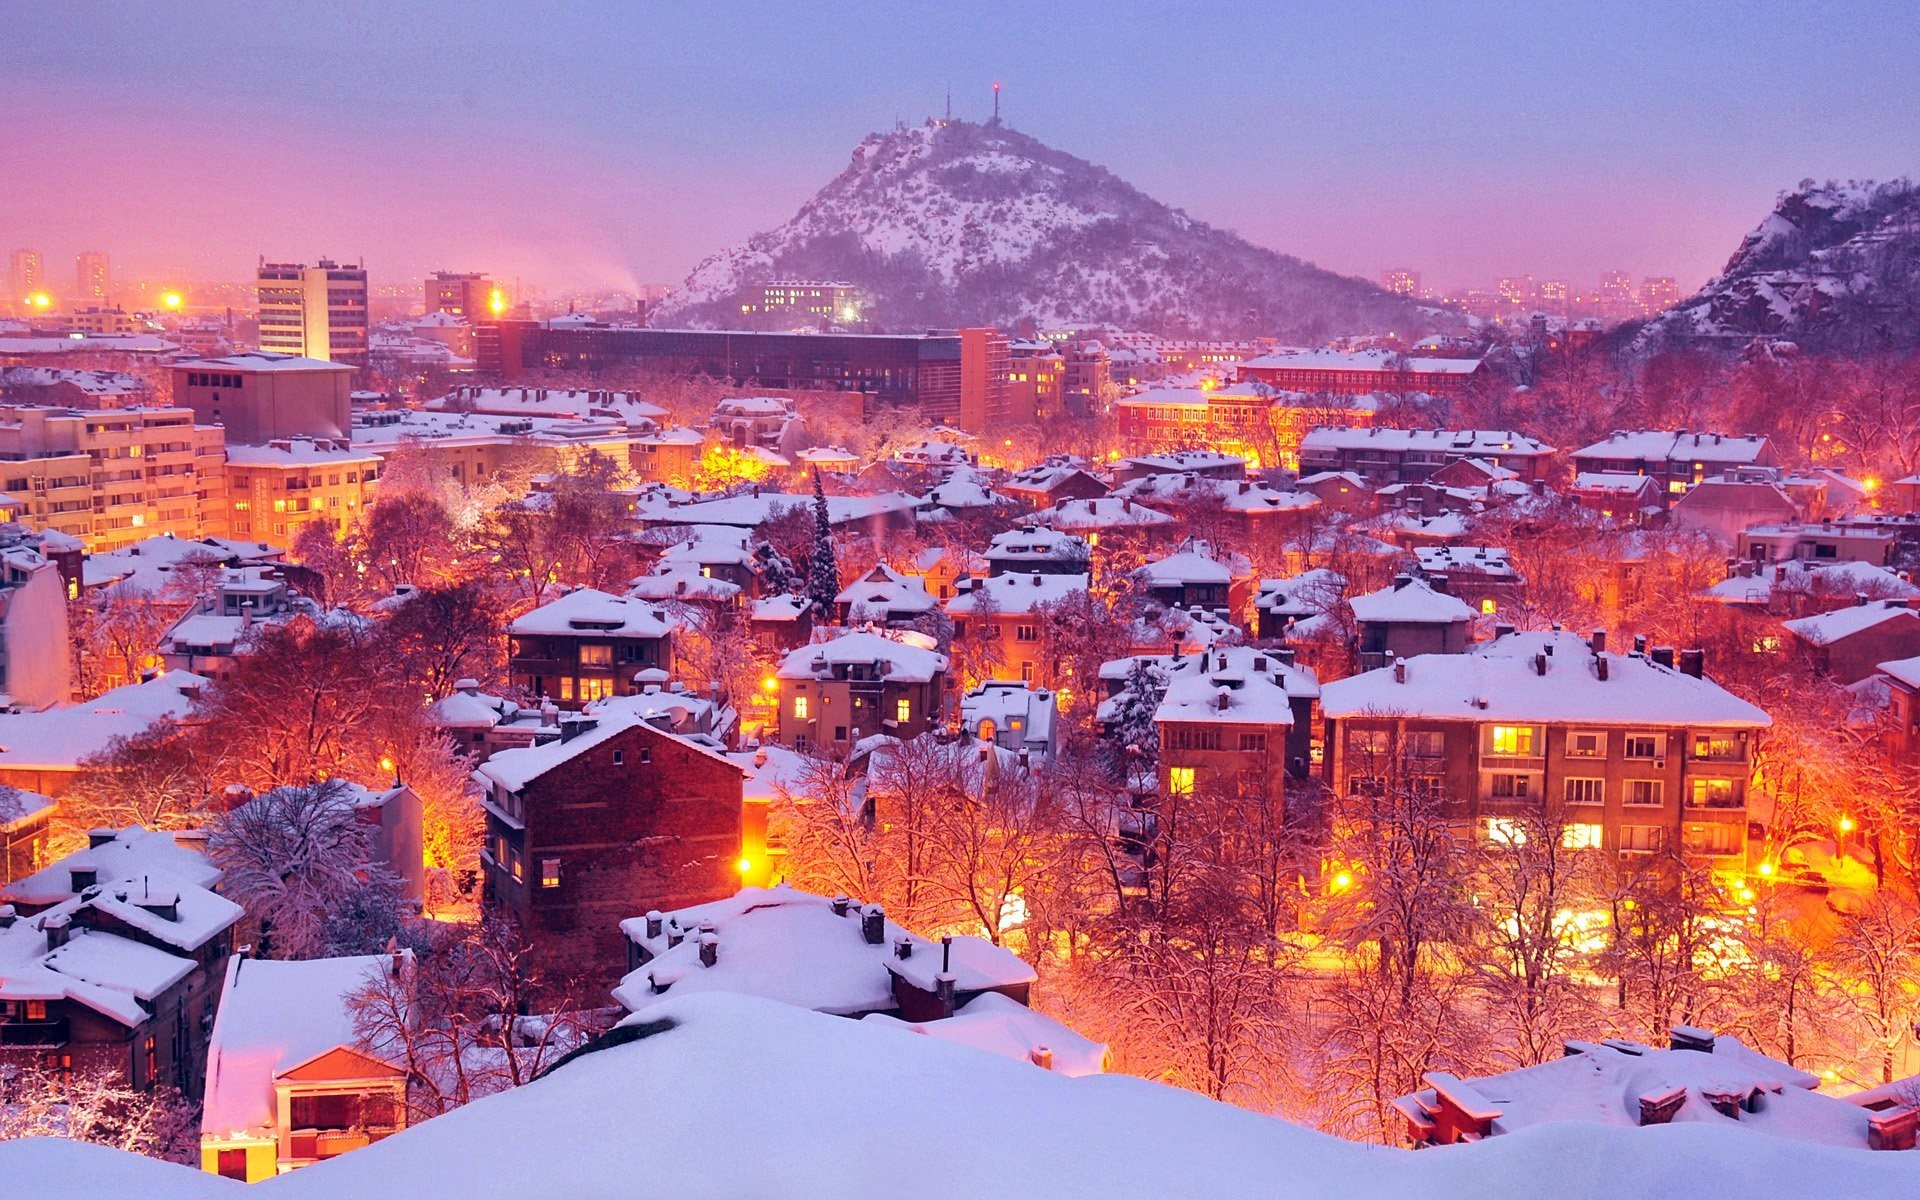 plovdiv bulgaria city lights winter plovdiv bulgaria town winter lights  light snow mountain house tree